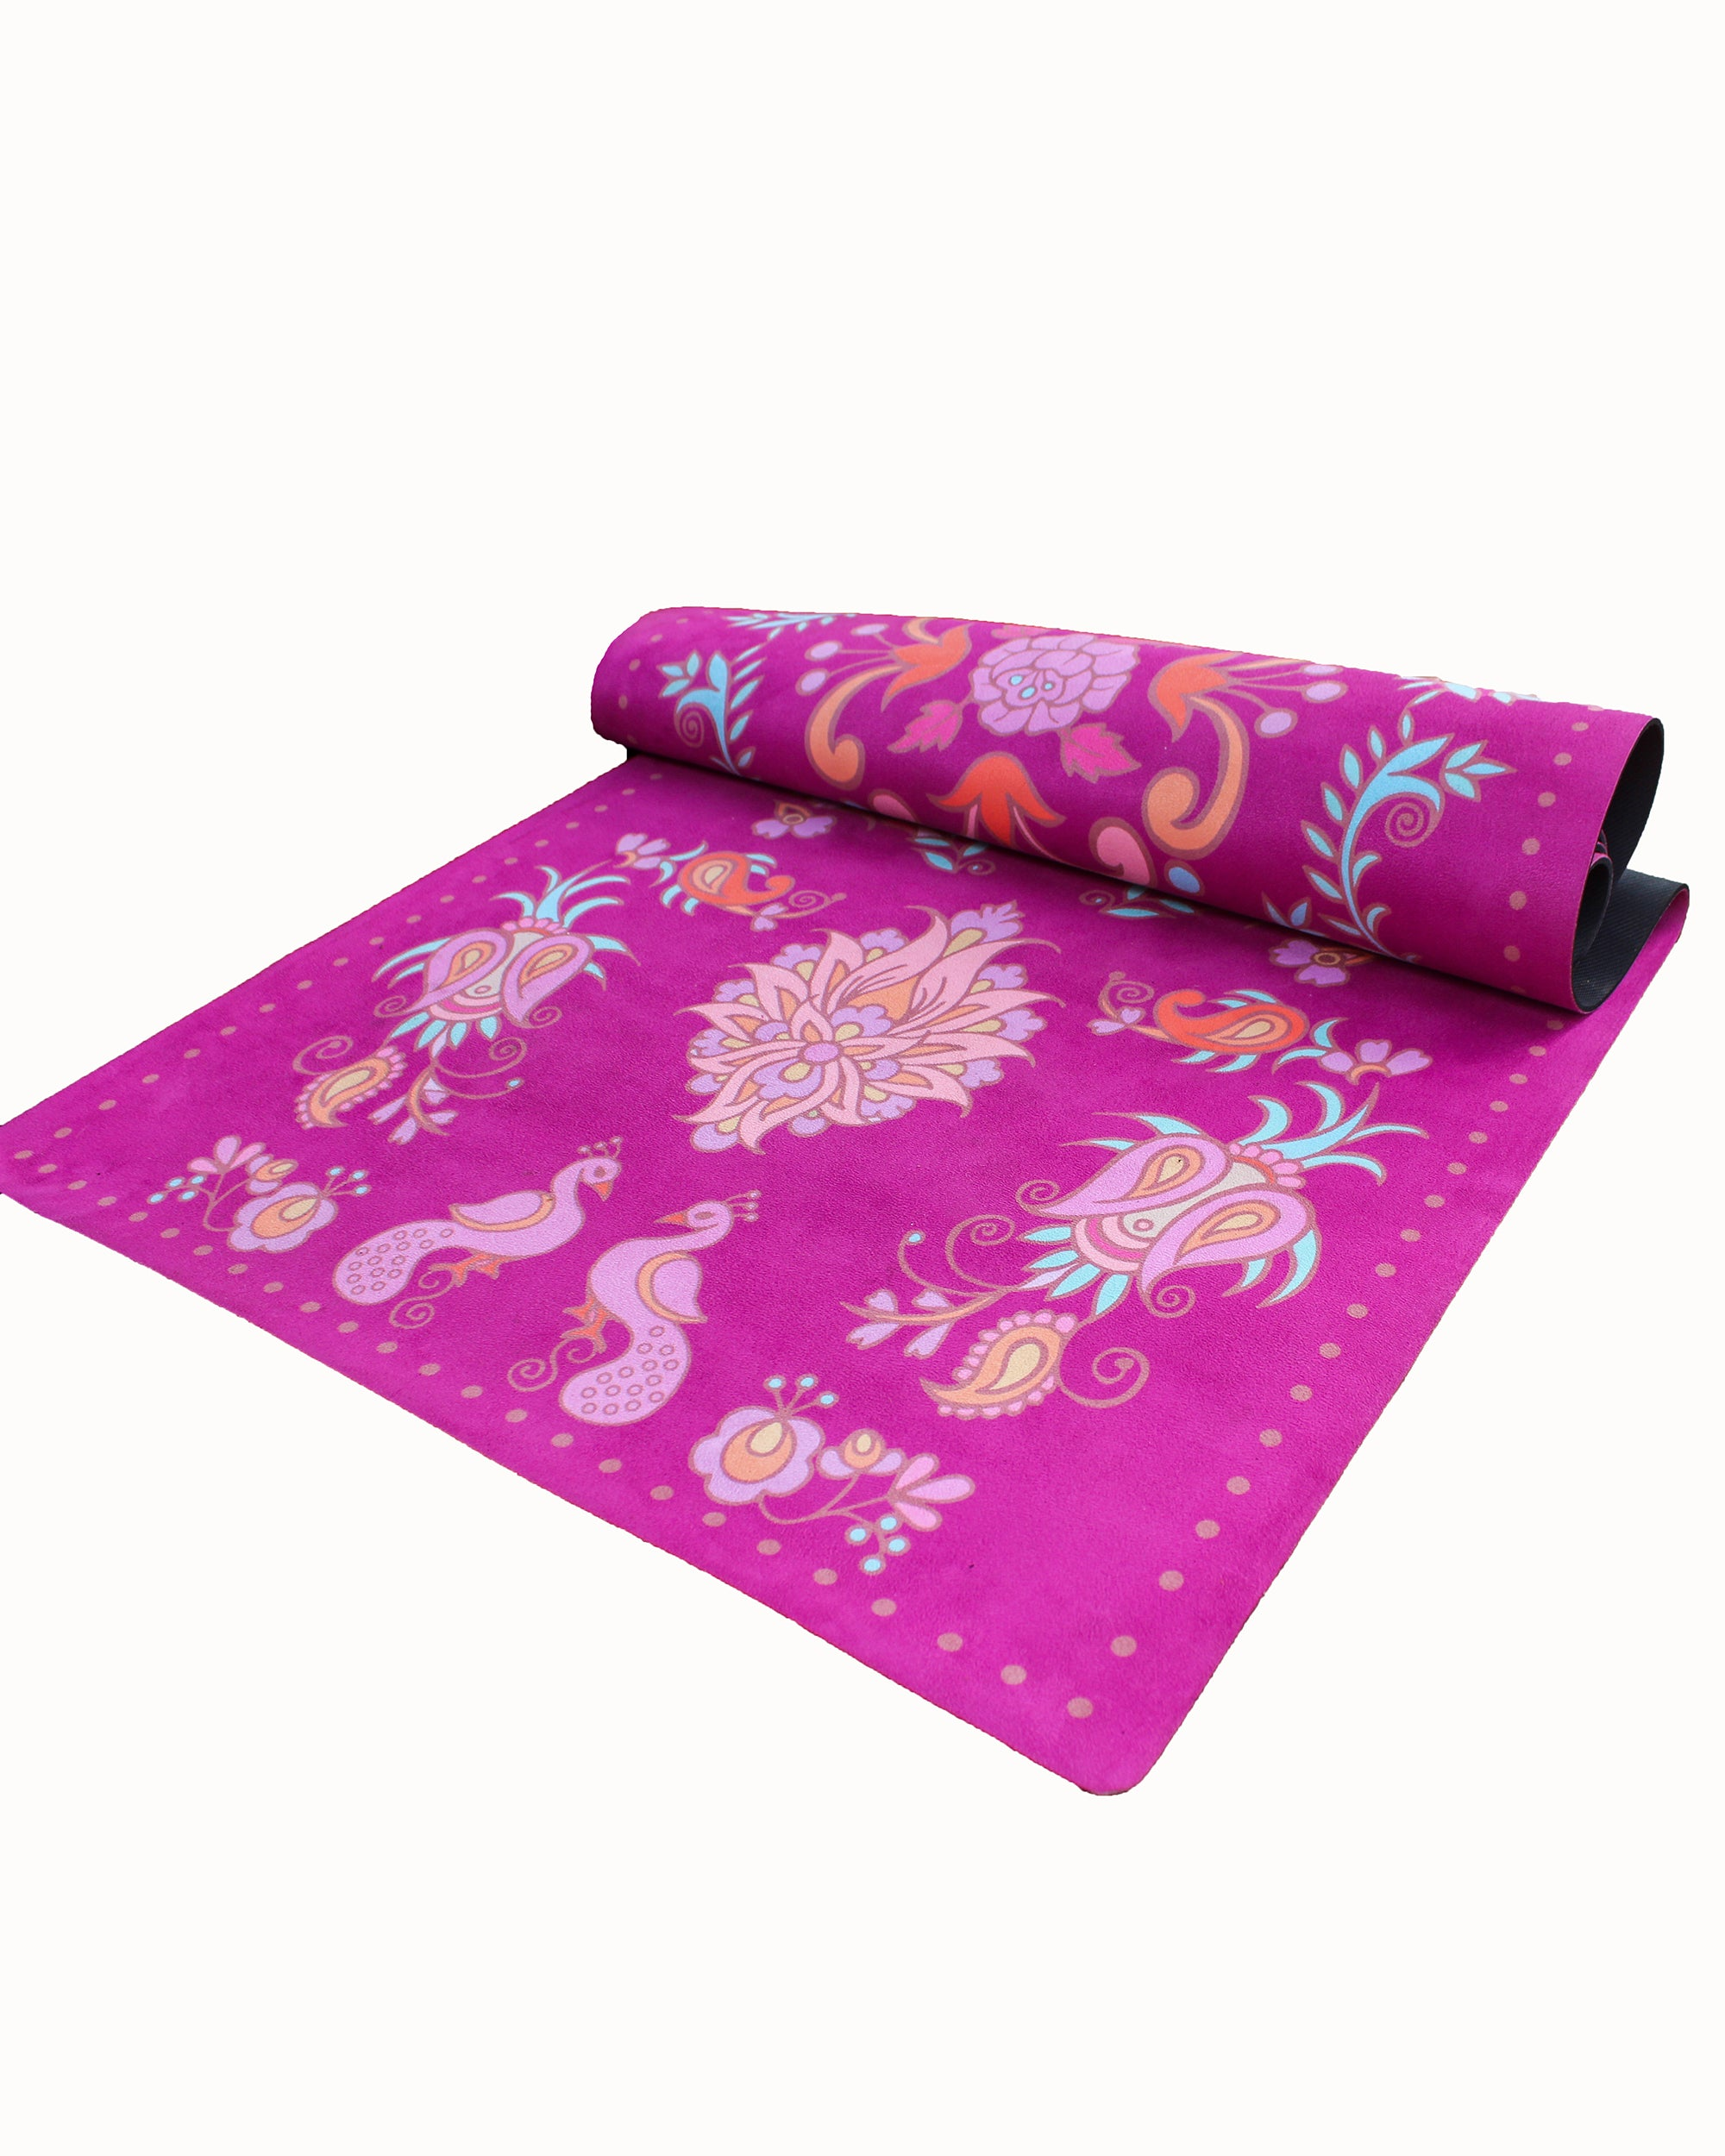 Suede Yoga Mat - Paisley Maroon